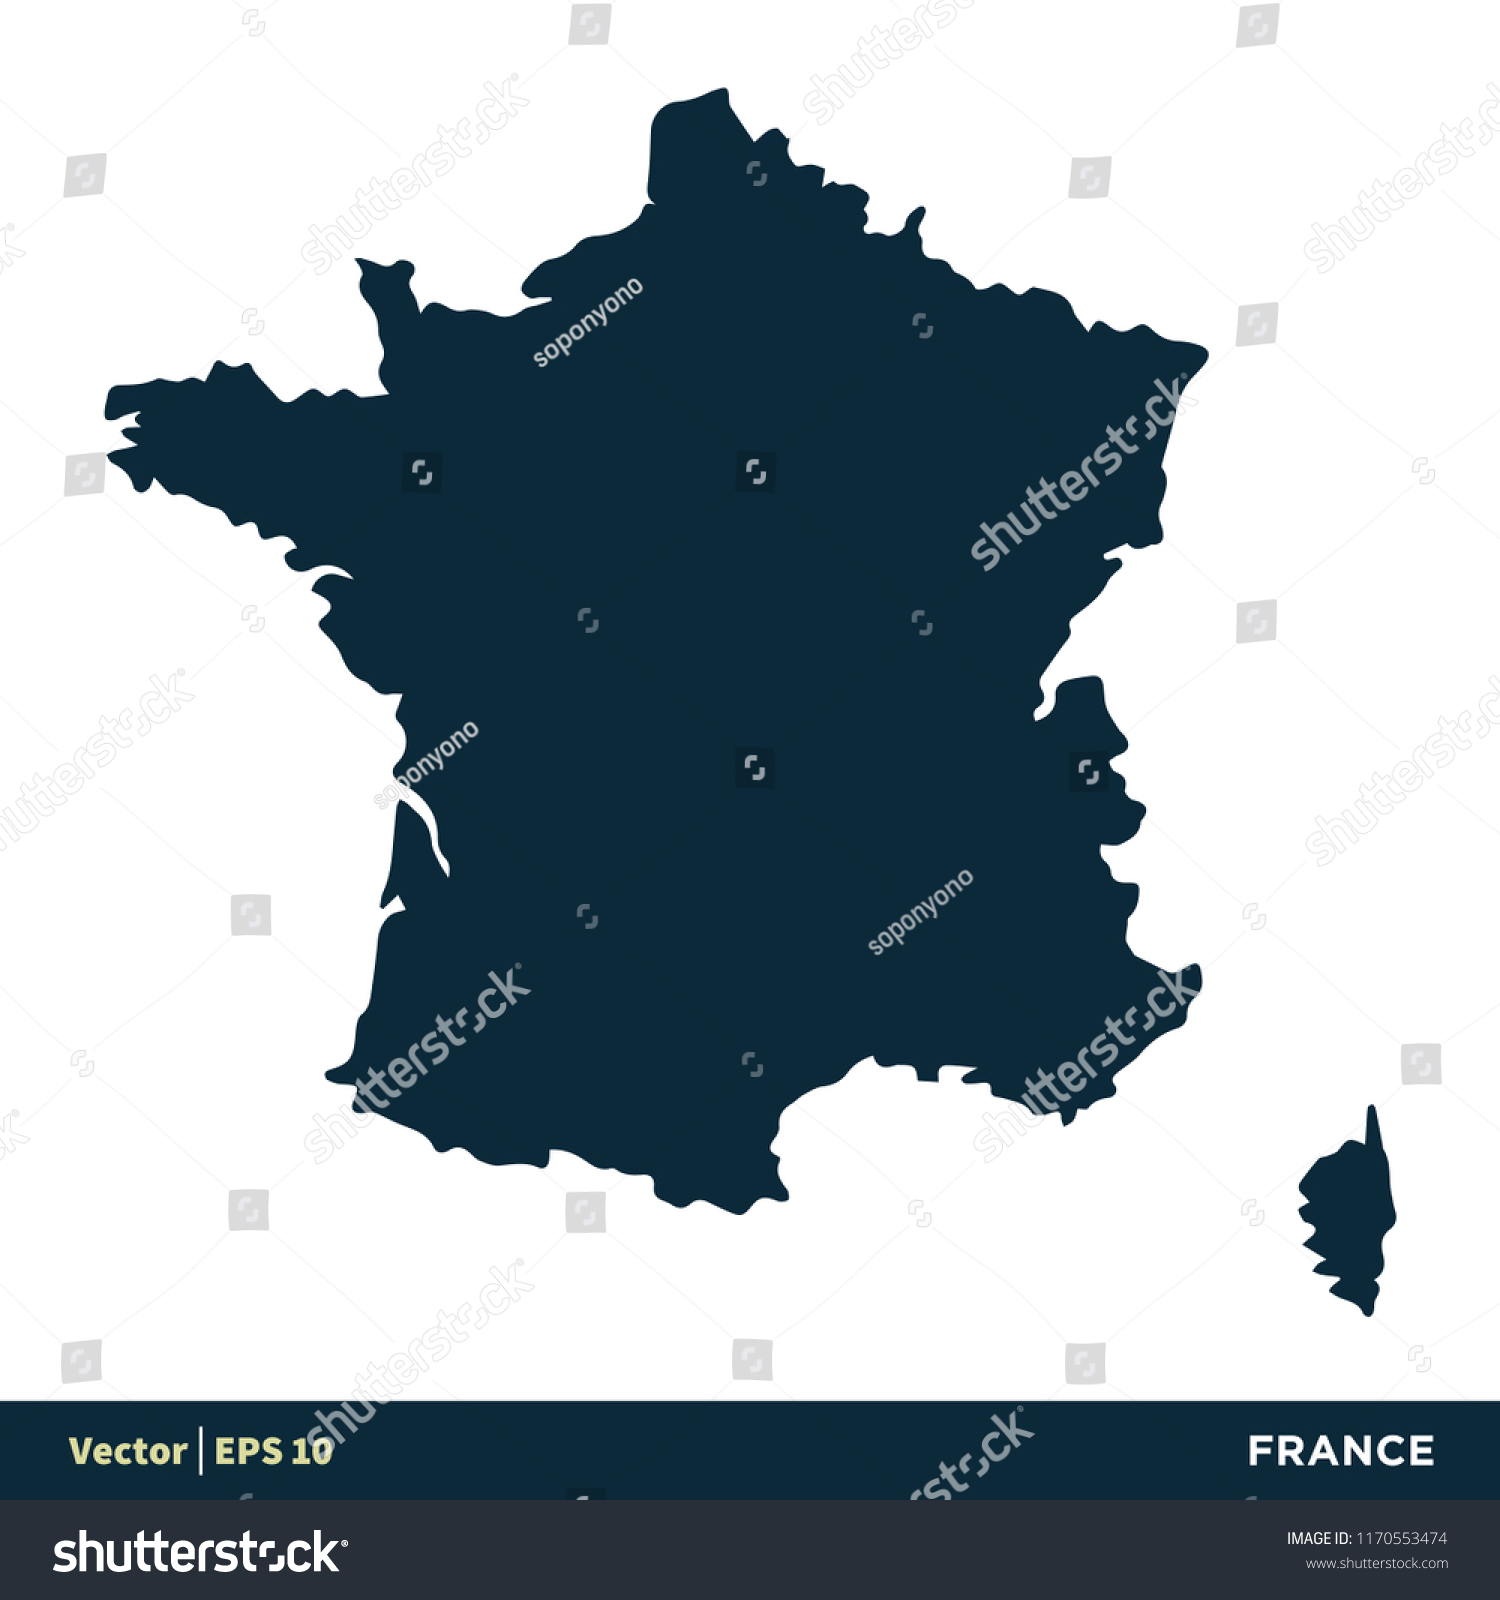 Map Of France And Europe.France Europe Countries Map Vector Icon Stock Vector Royalty Free